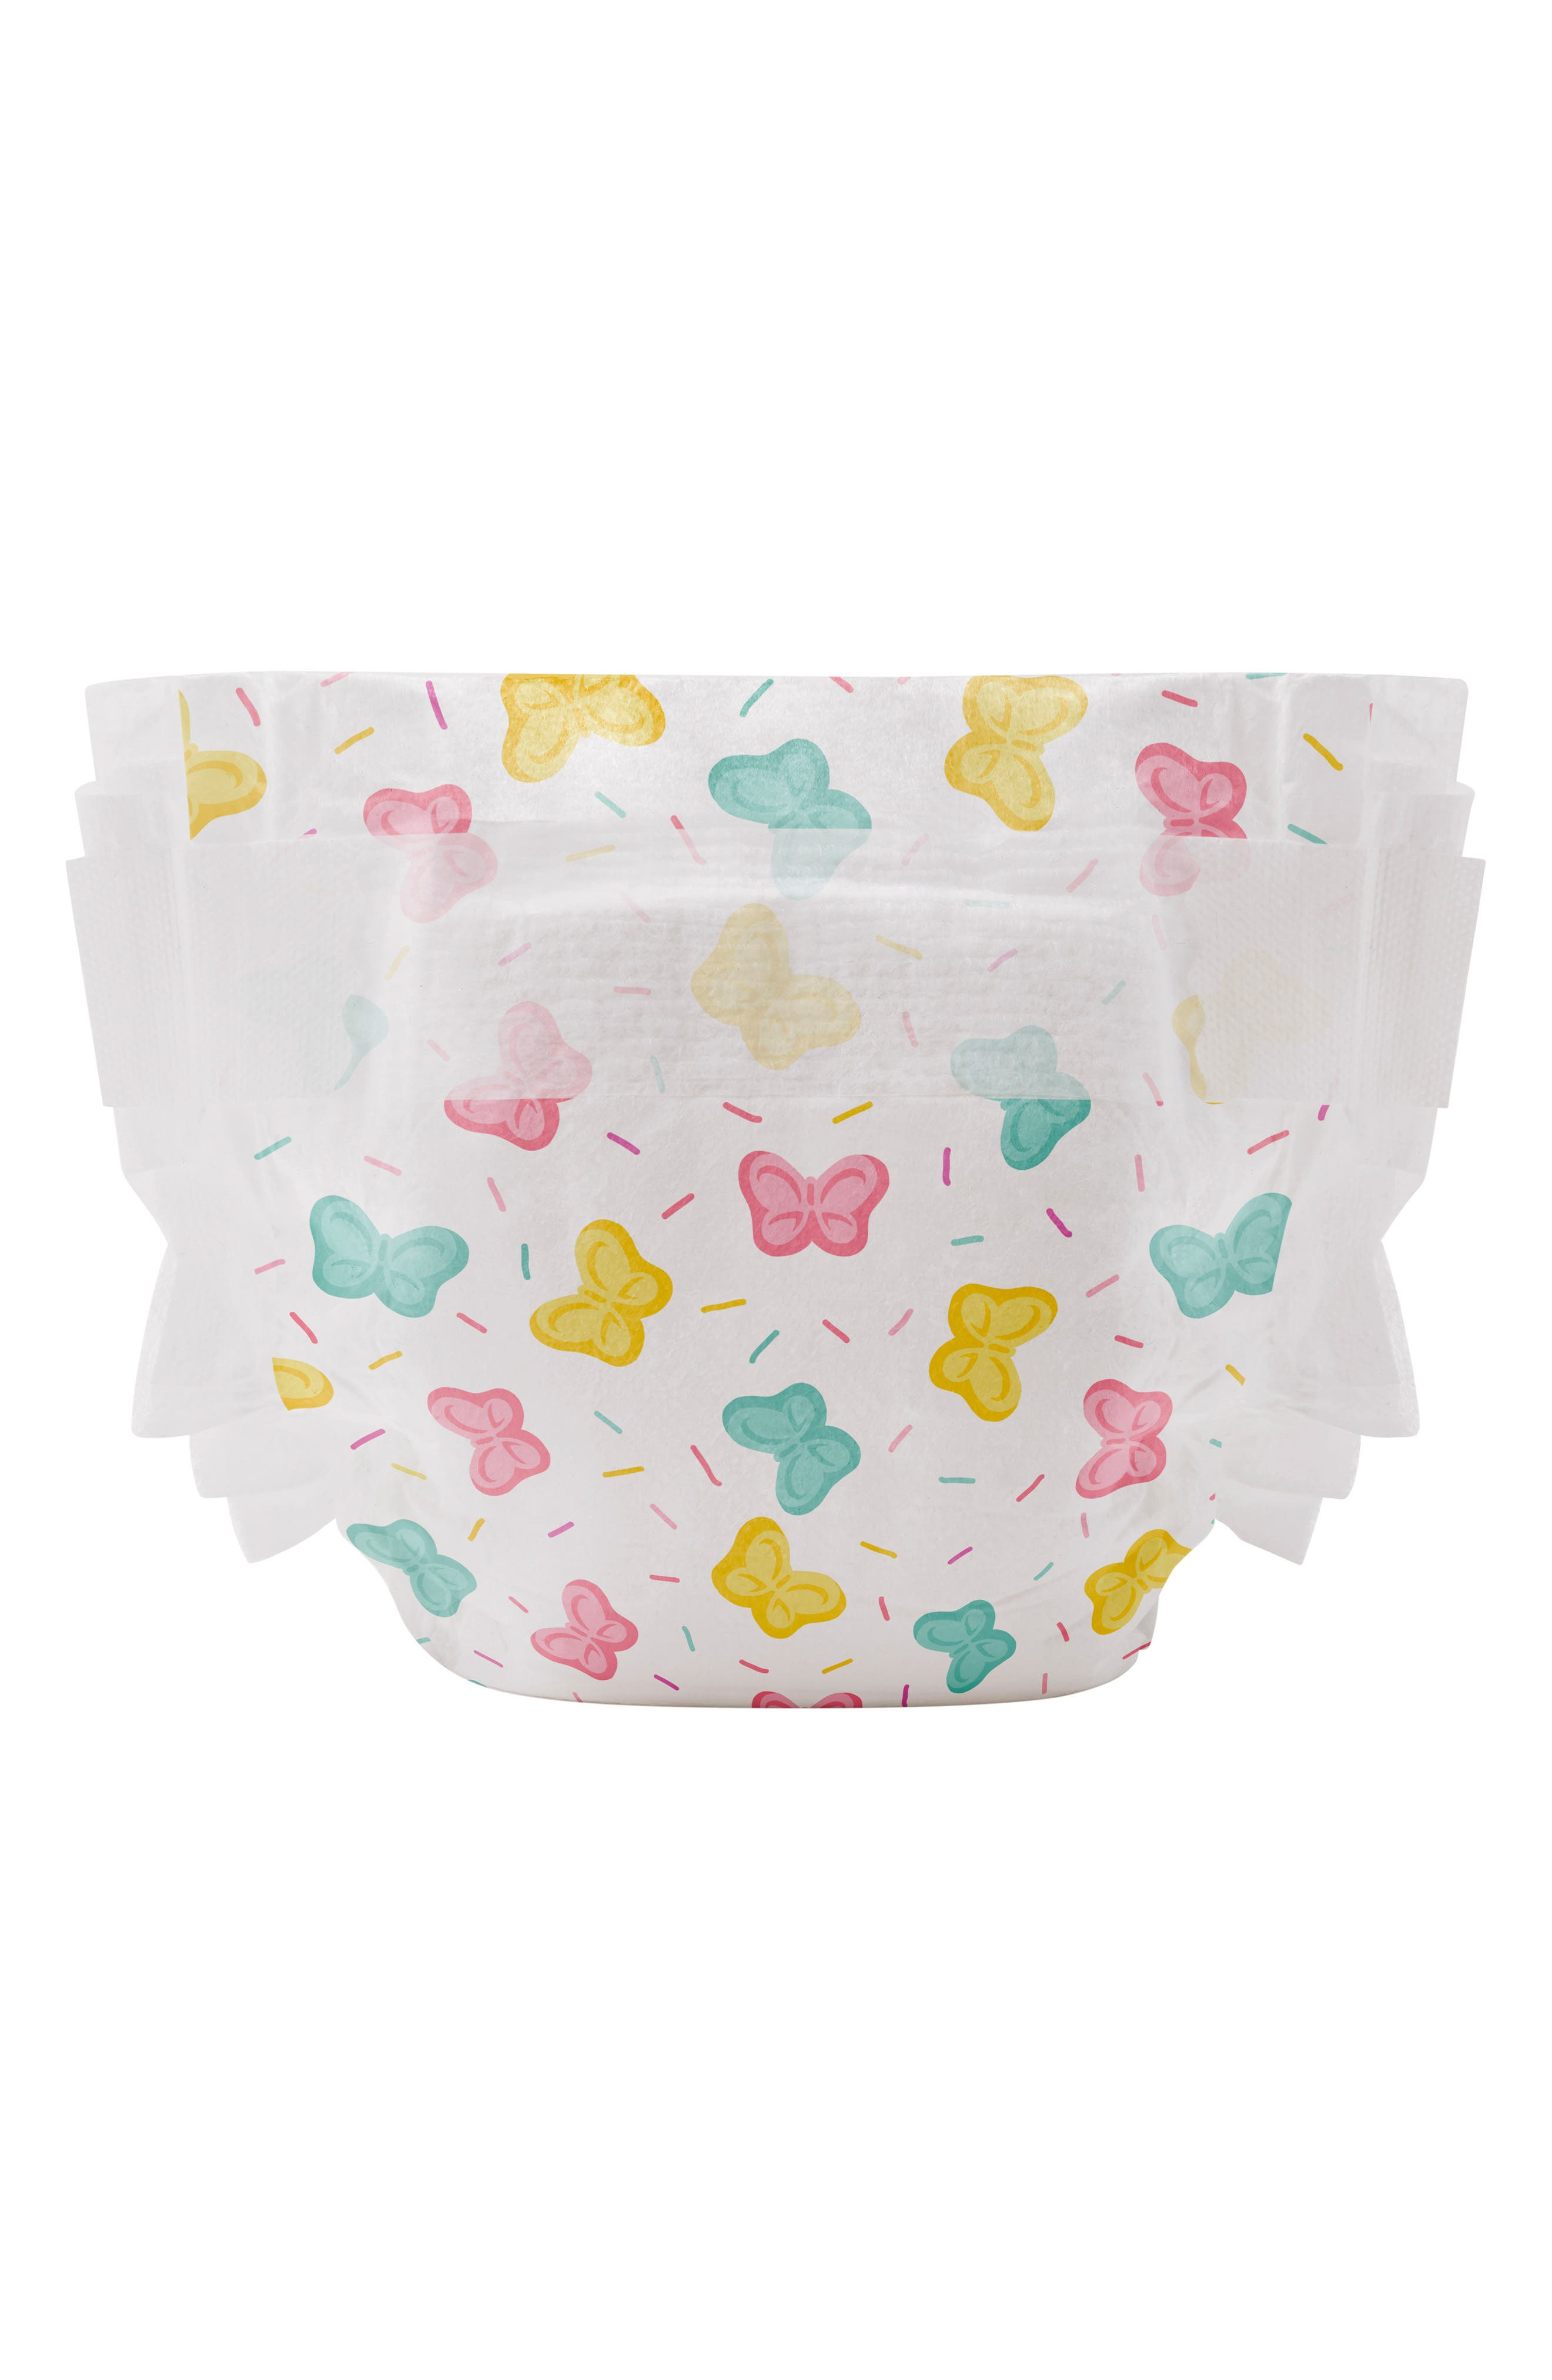 x Sugarfina Sweet Thing Diapers,                         Main,                         color, SWEET THING